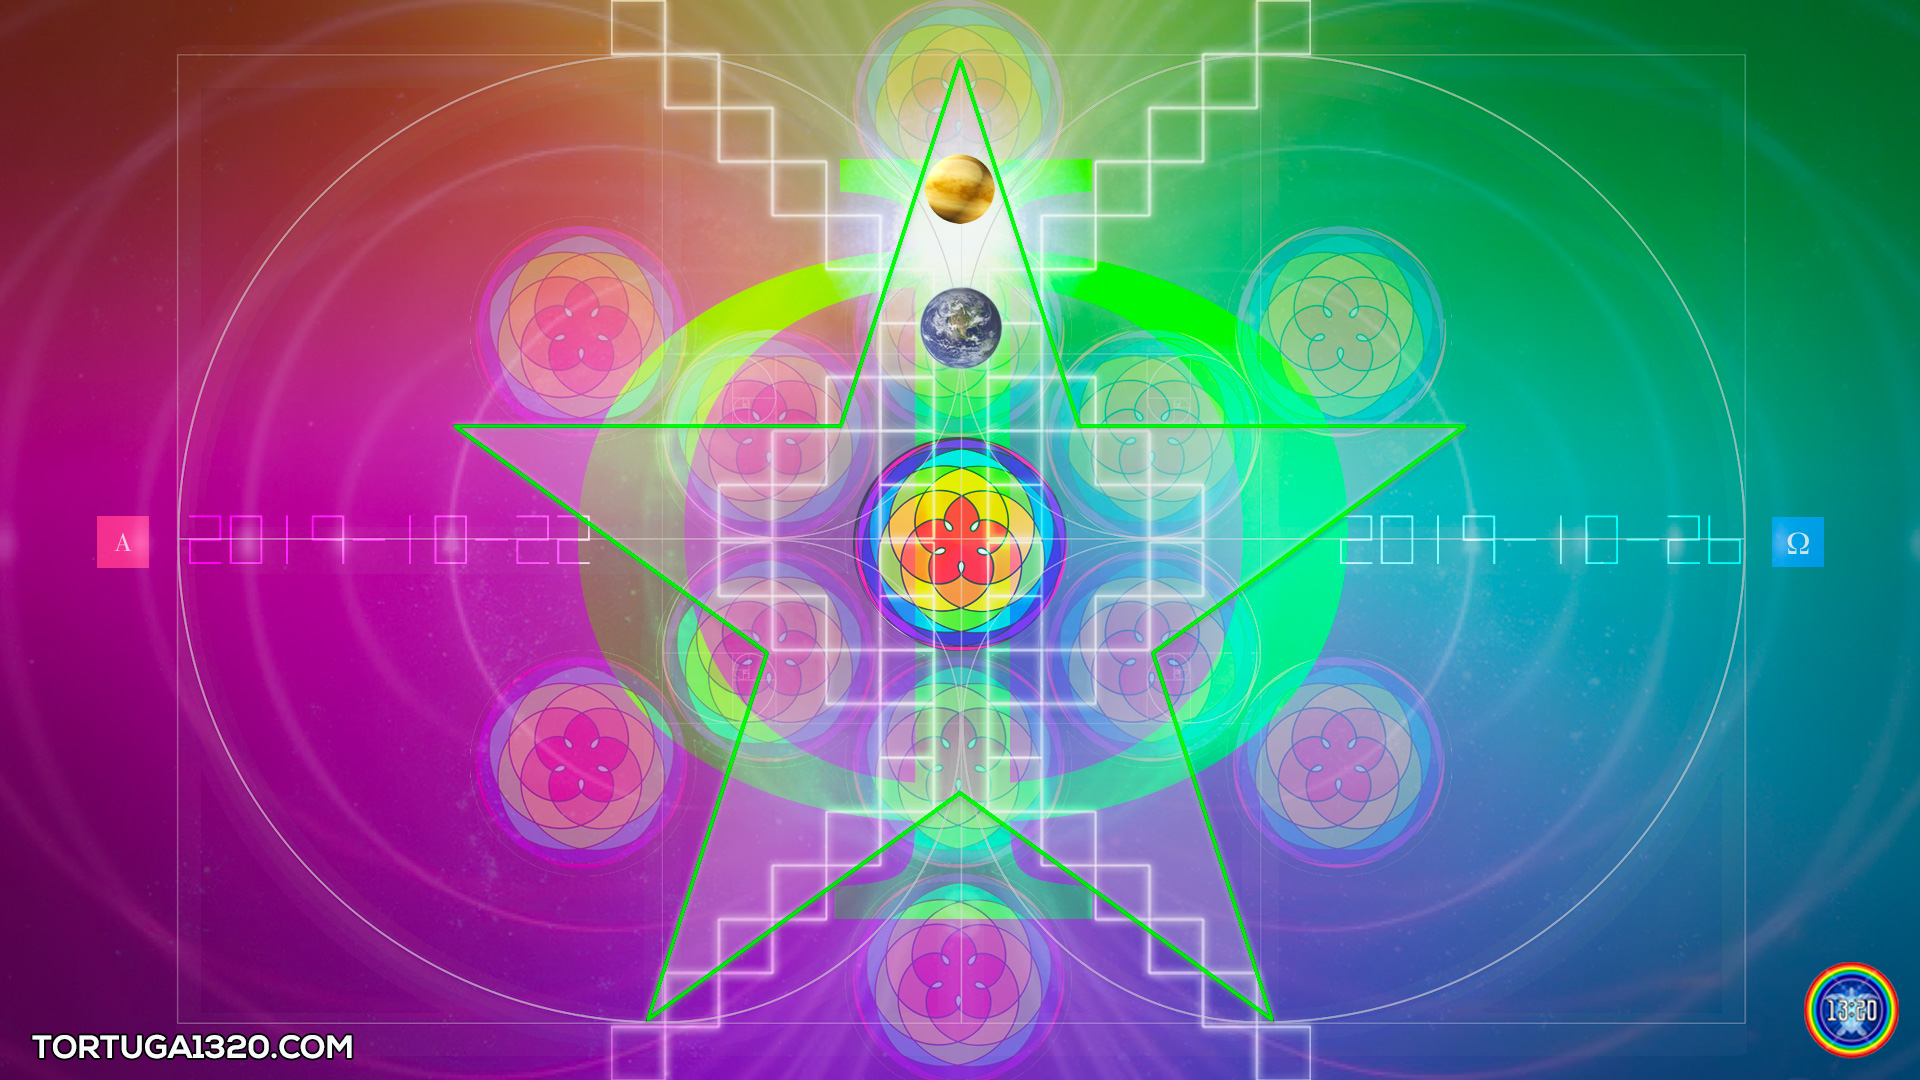 Noospheric Emergence pART 9: Harmonic Convergence of Golden Proportions